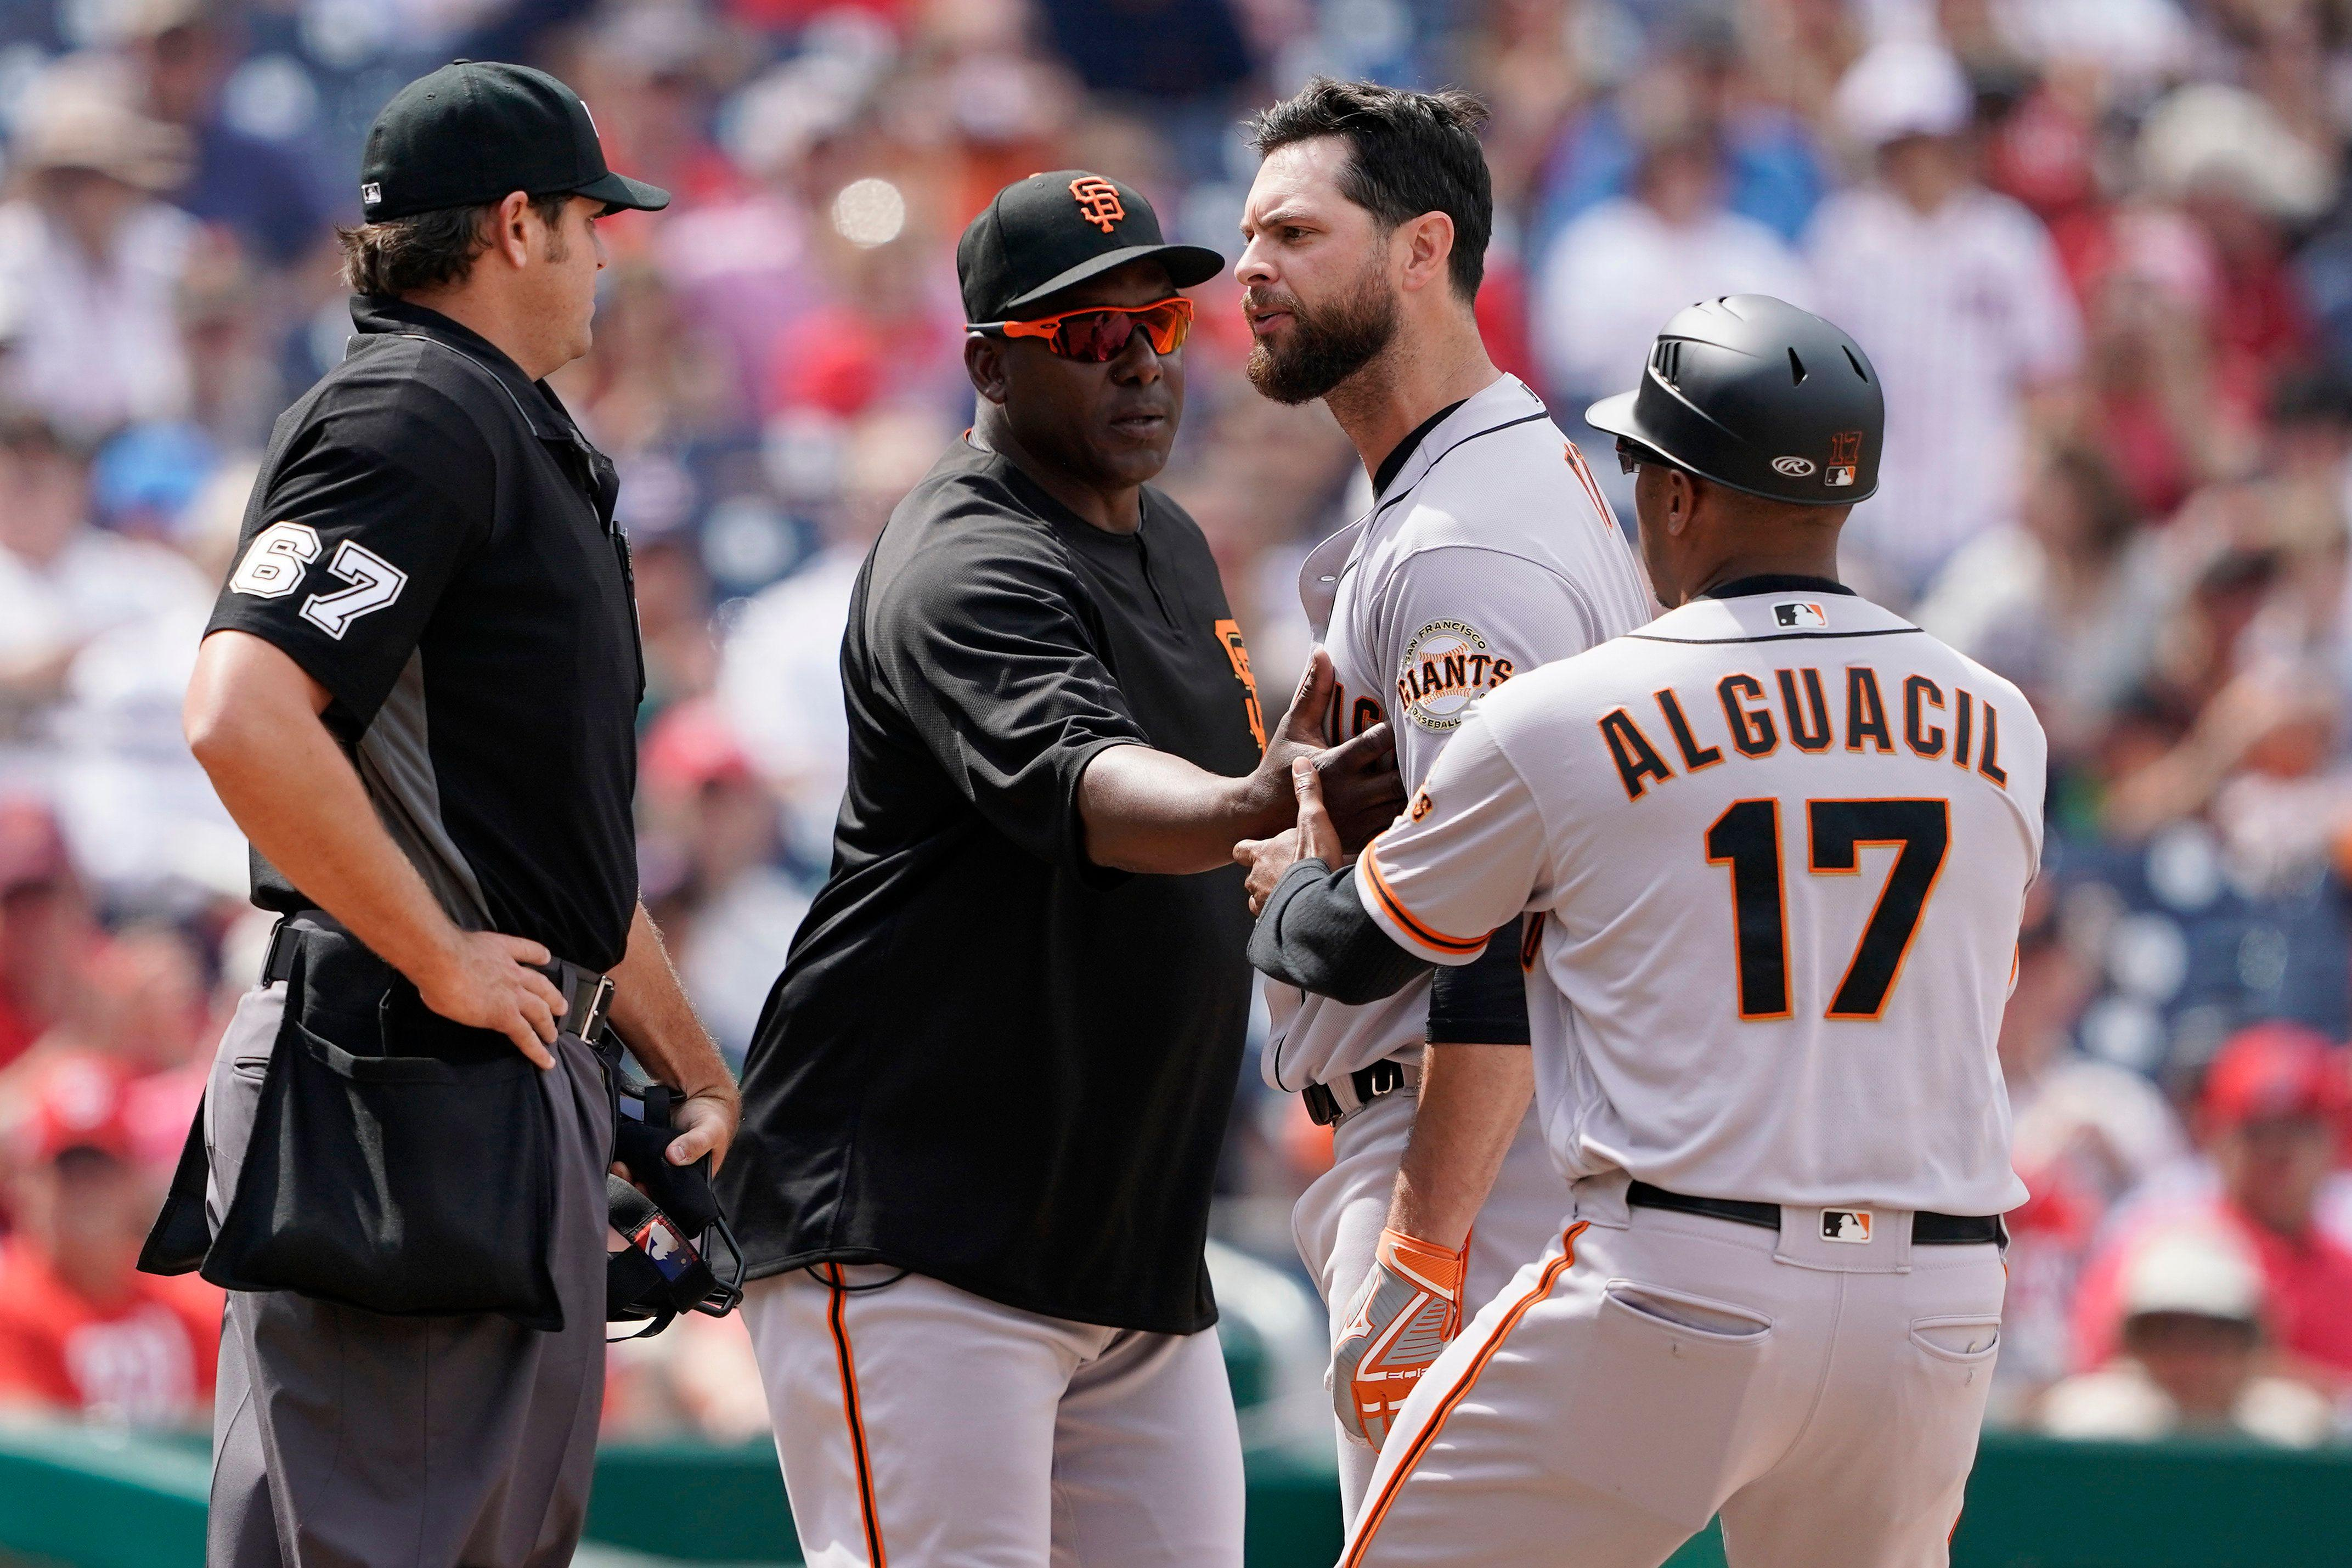 81f535ef93a Frustration with MLB umpires growing again after series of heated  confrontations